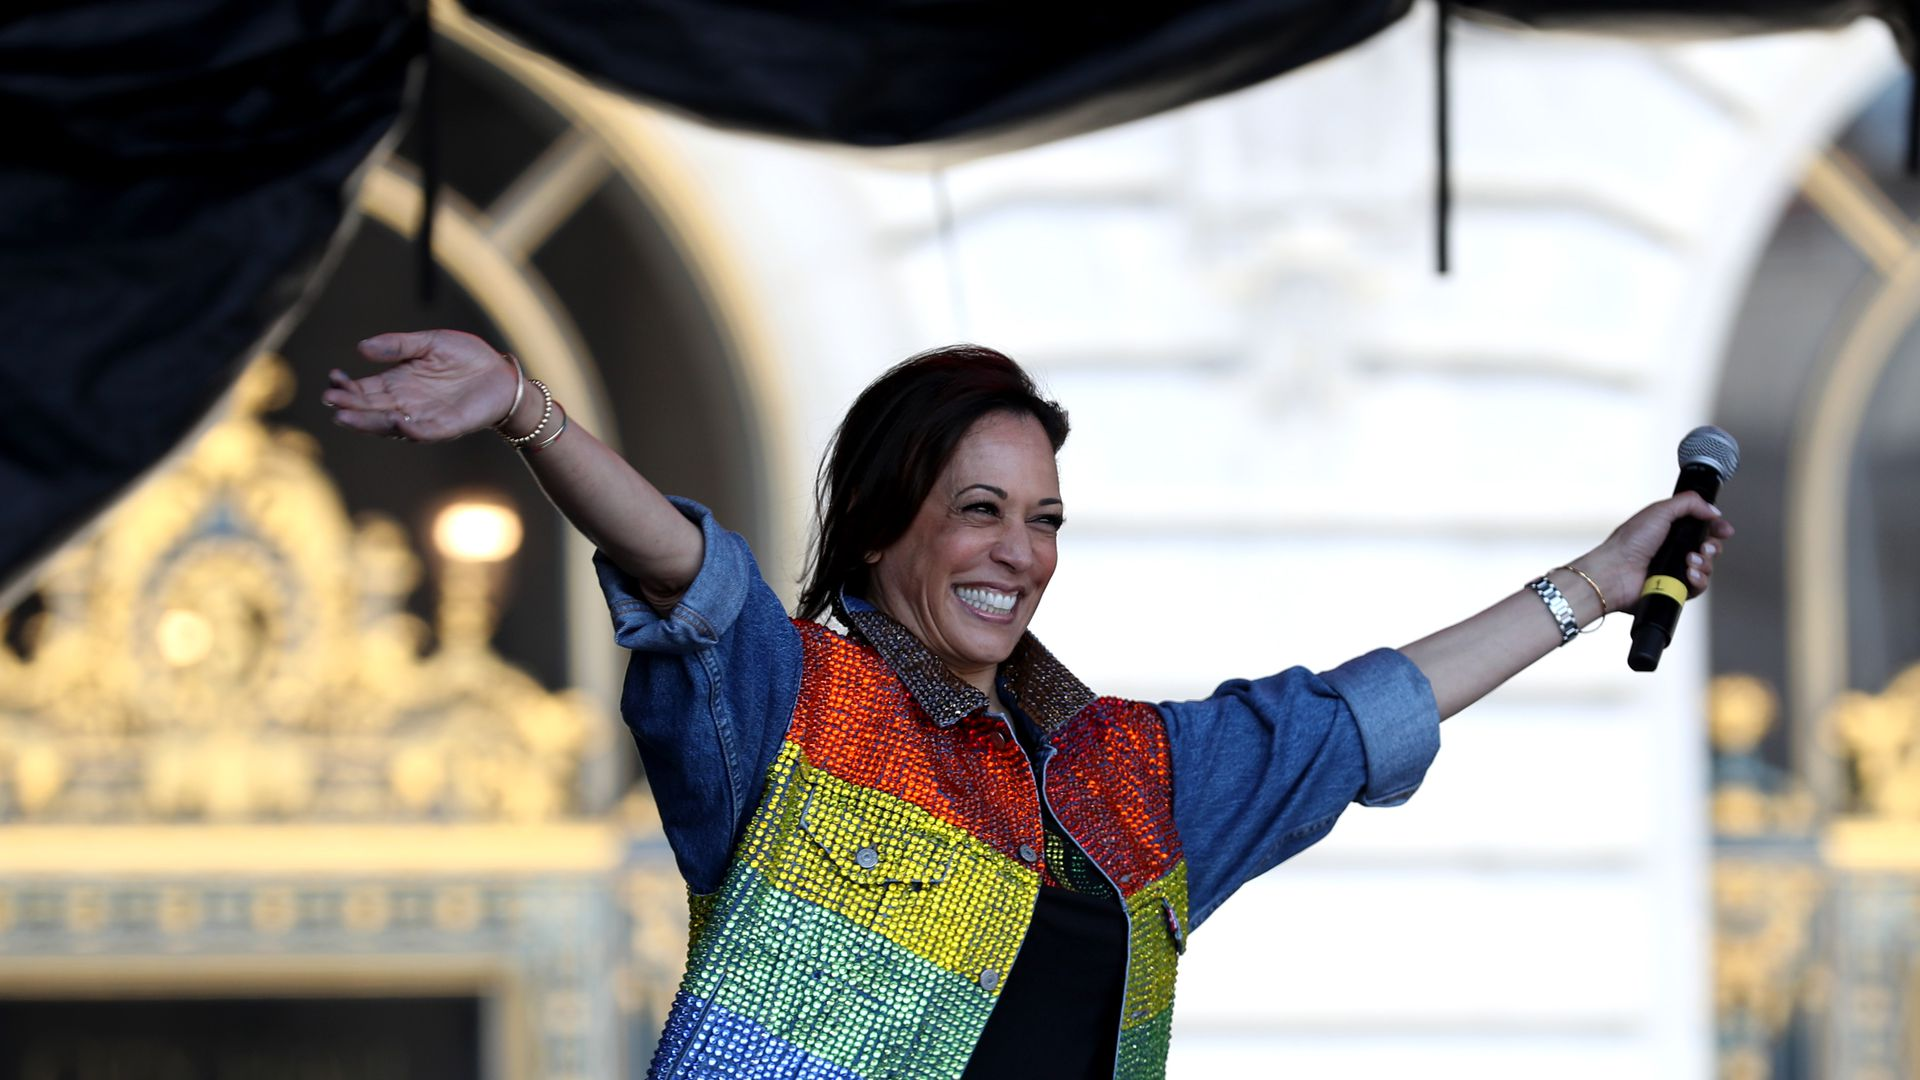 Democratic presidential candidate U.S. Sen. Kamala Harris (D-CA) speaks during the SF Pride Parade on June 30, 2019 in San Francisco, California.